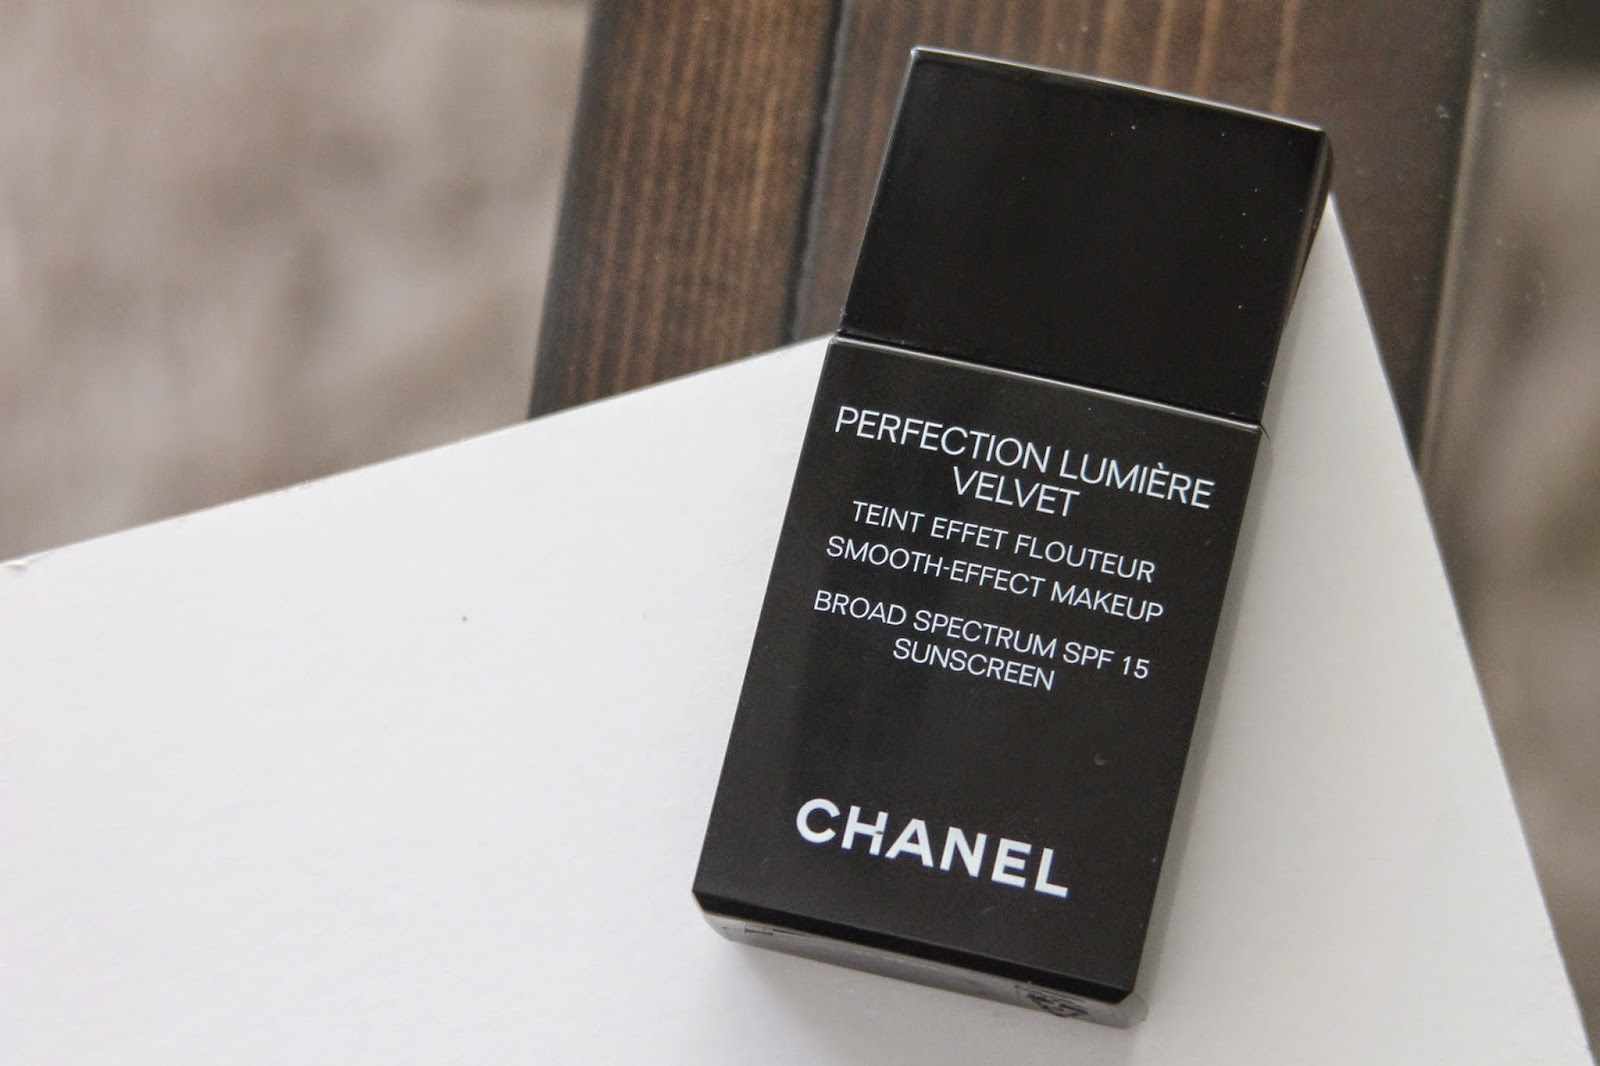 WHY CHANEL'S PERFECTION LUMIERE VELVET IS AWESOME